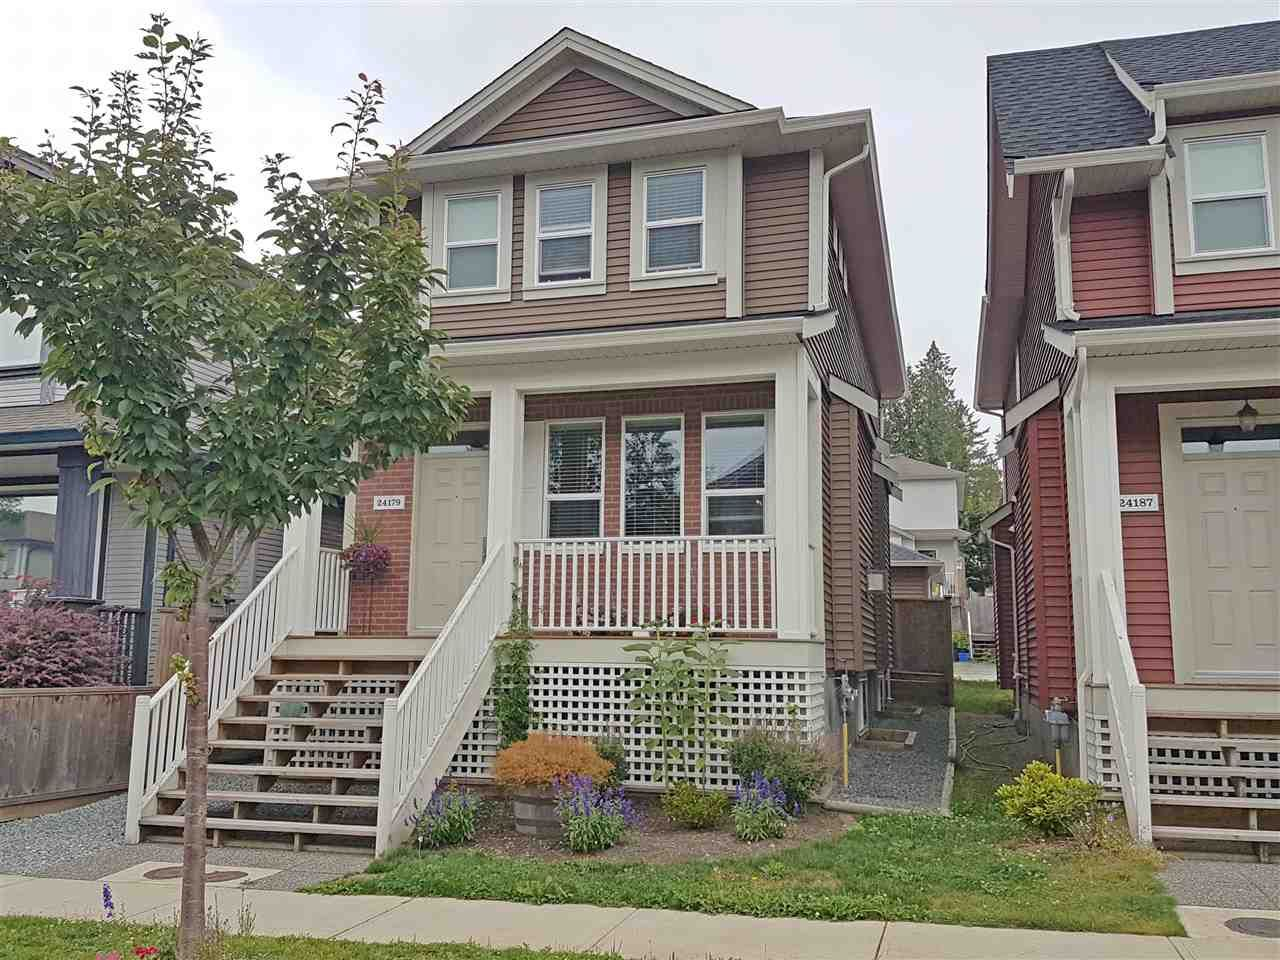 Main Photo: 24179 102A AVENUE in : Albion House for sale : MLS®# R2098552